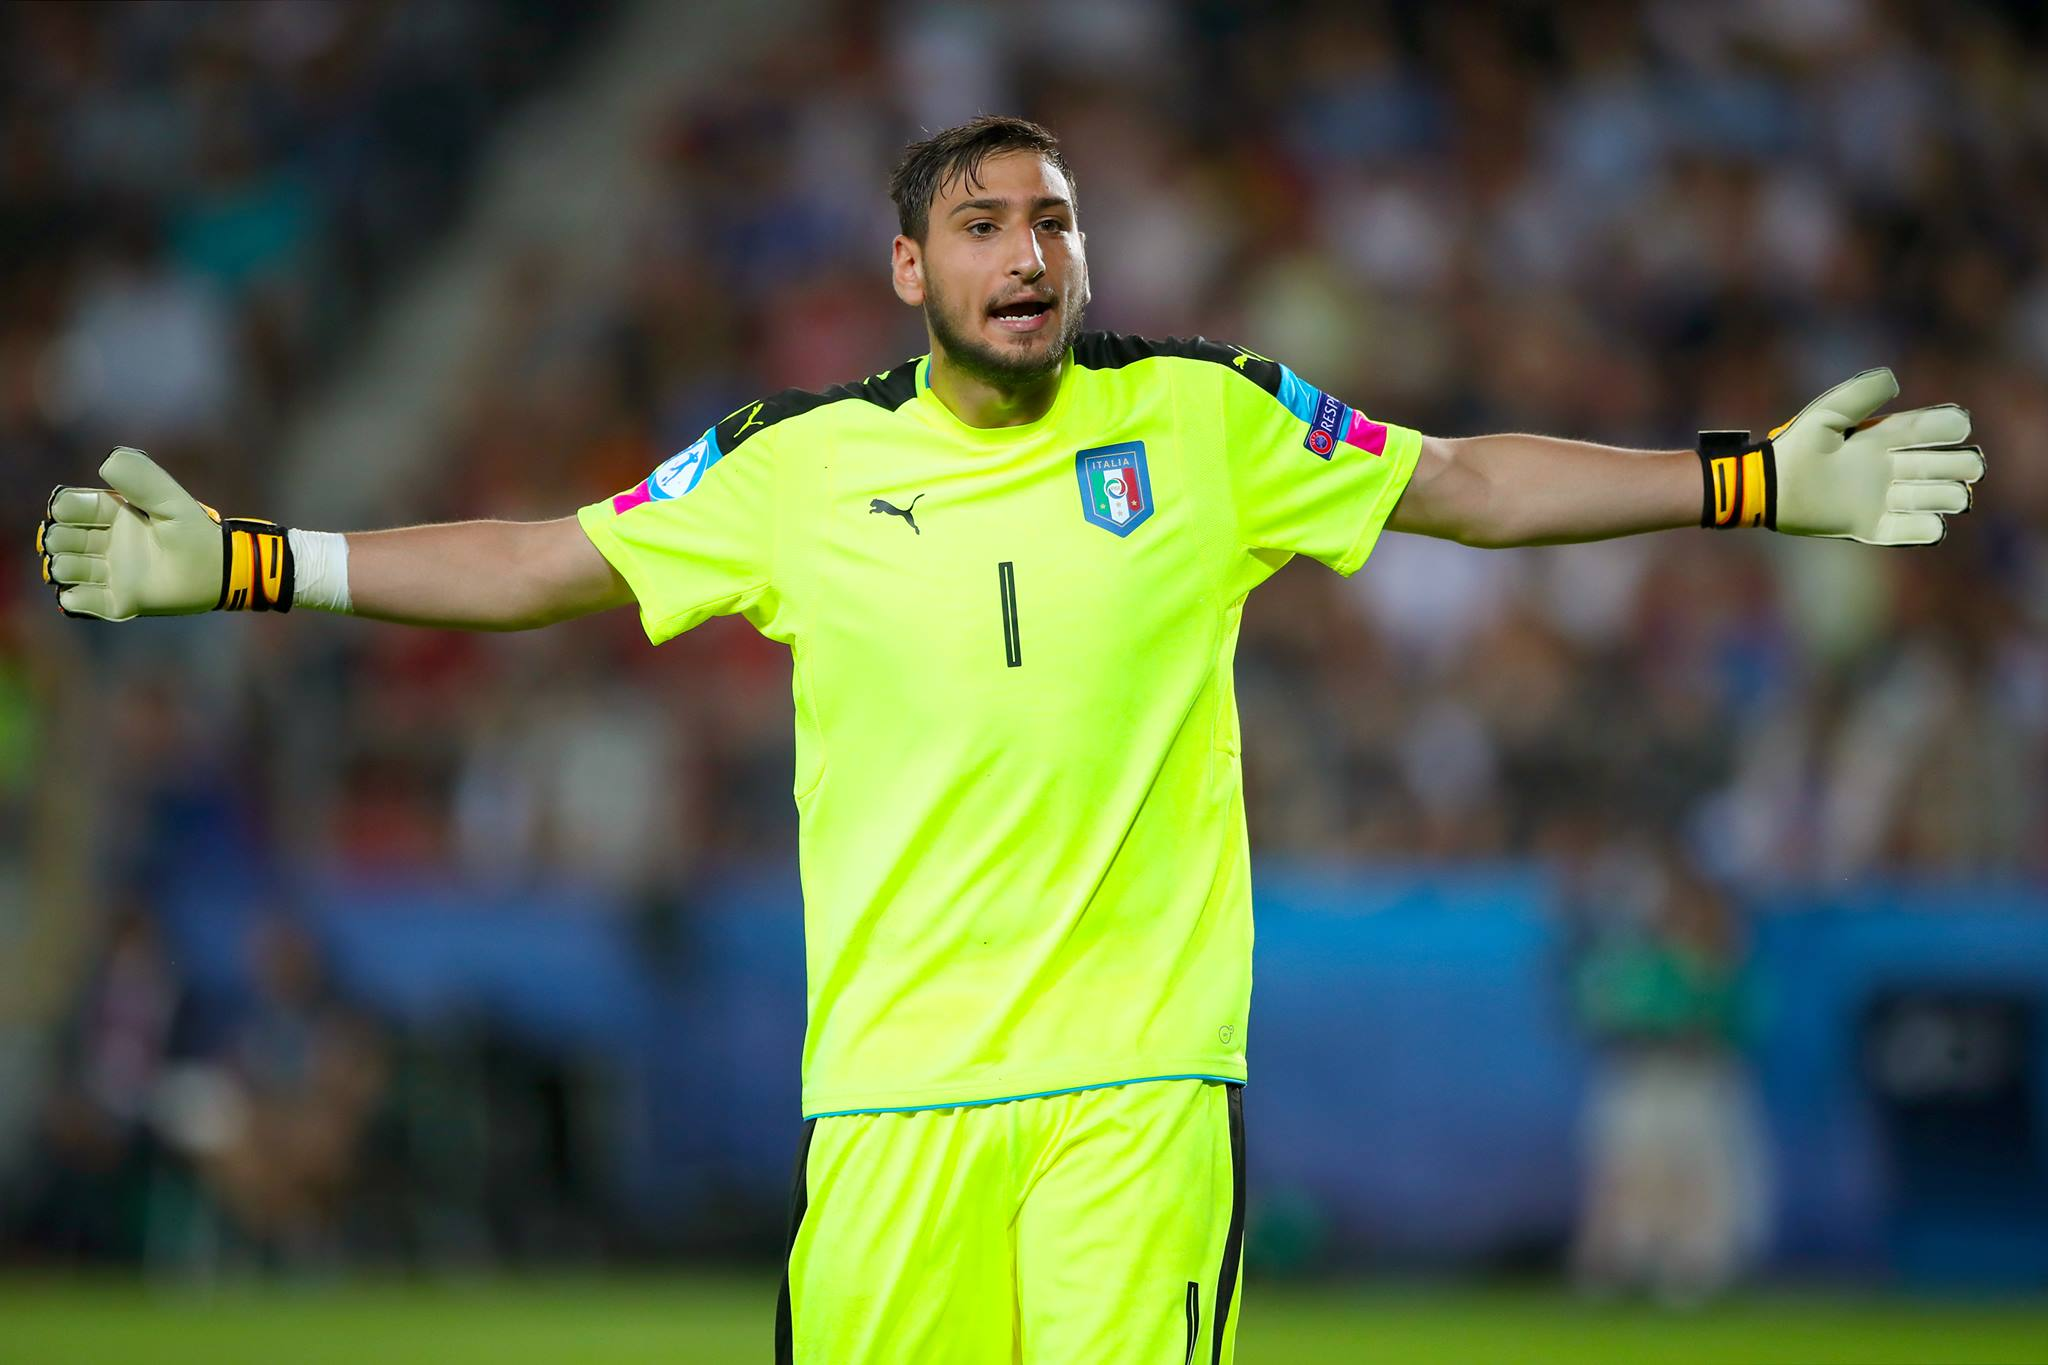 Marco Fassone: Donnarumma will sign in coming days